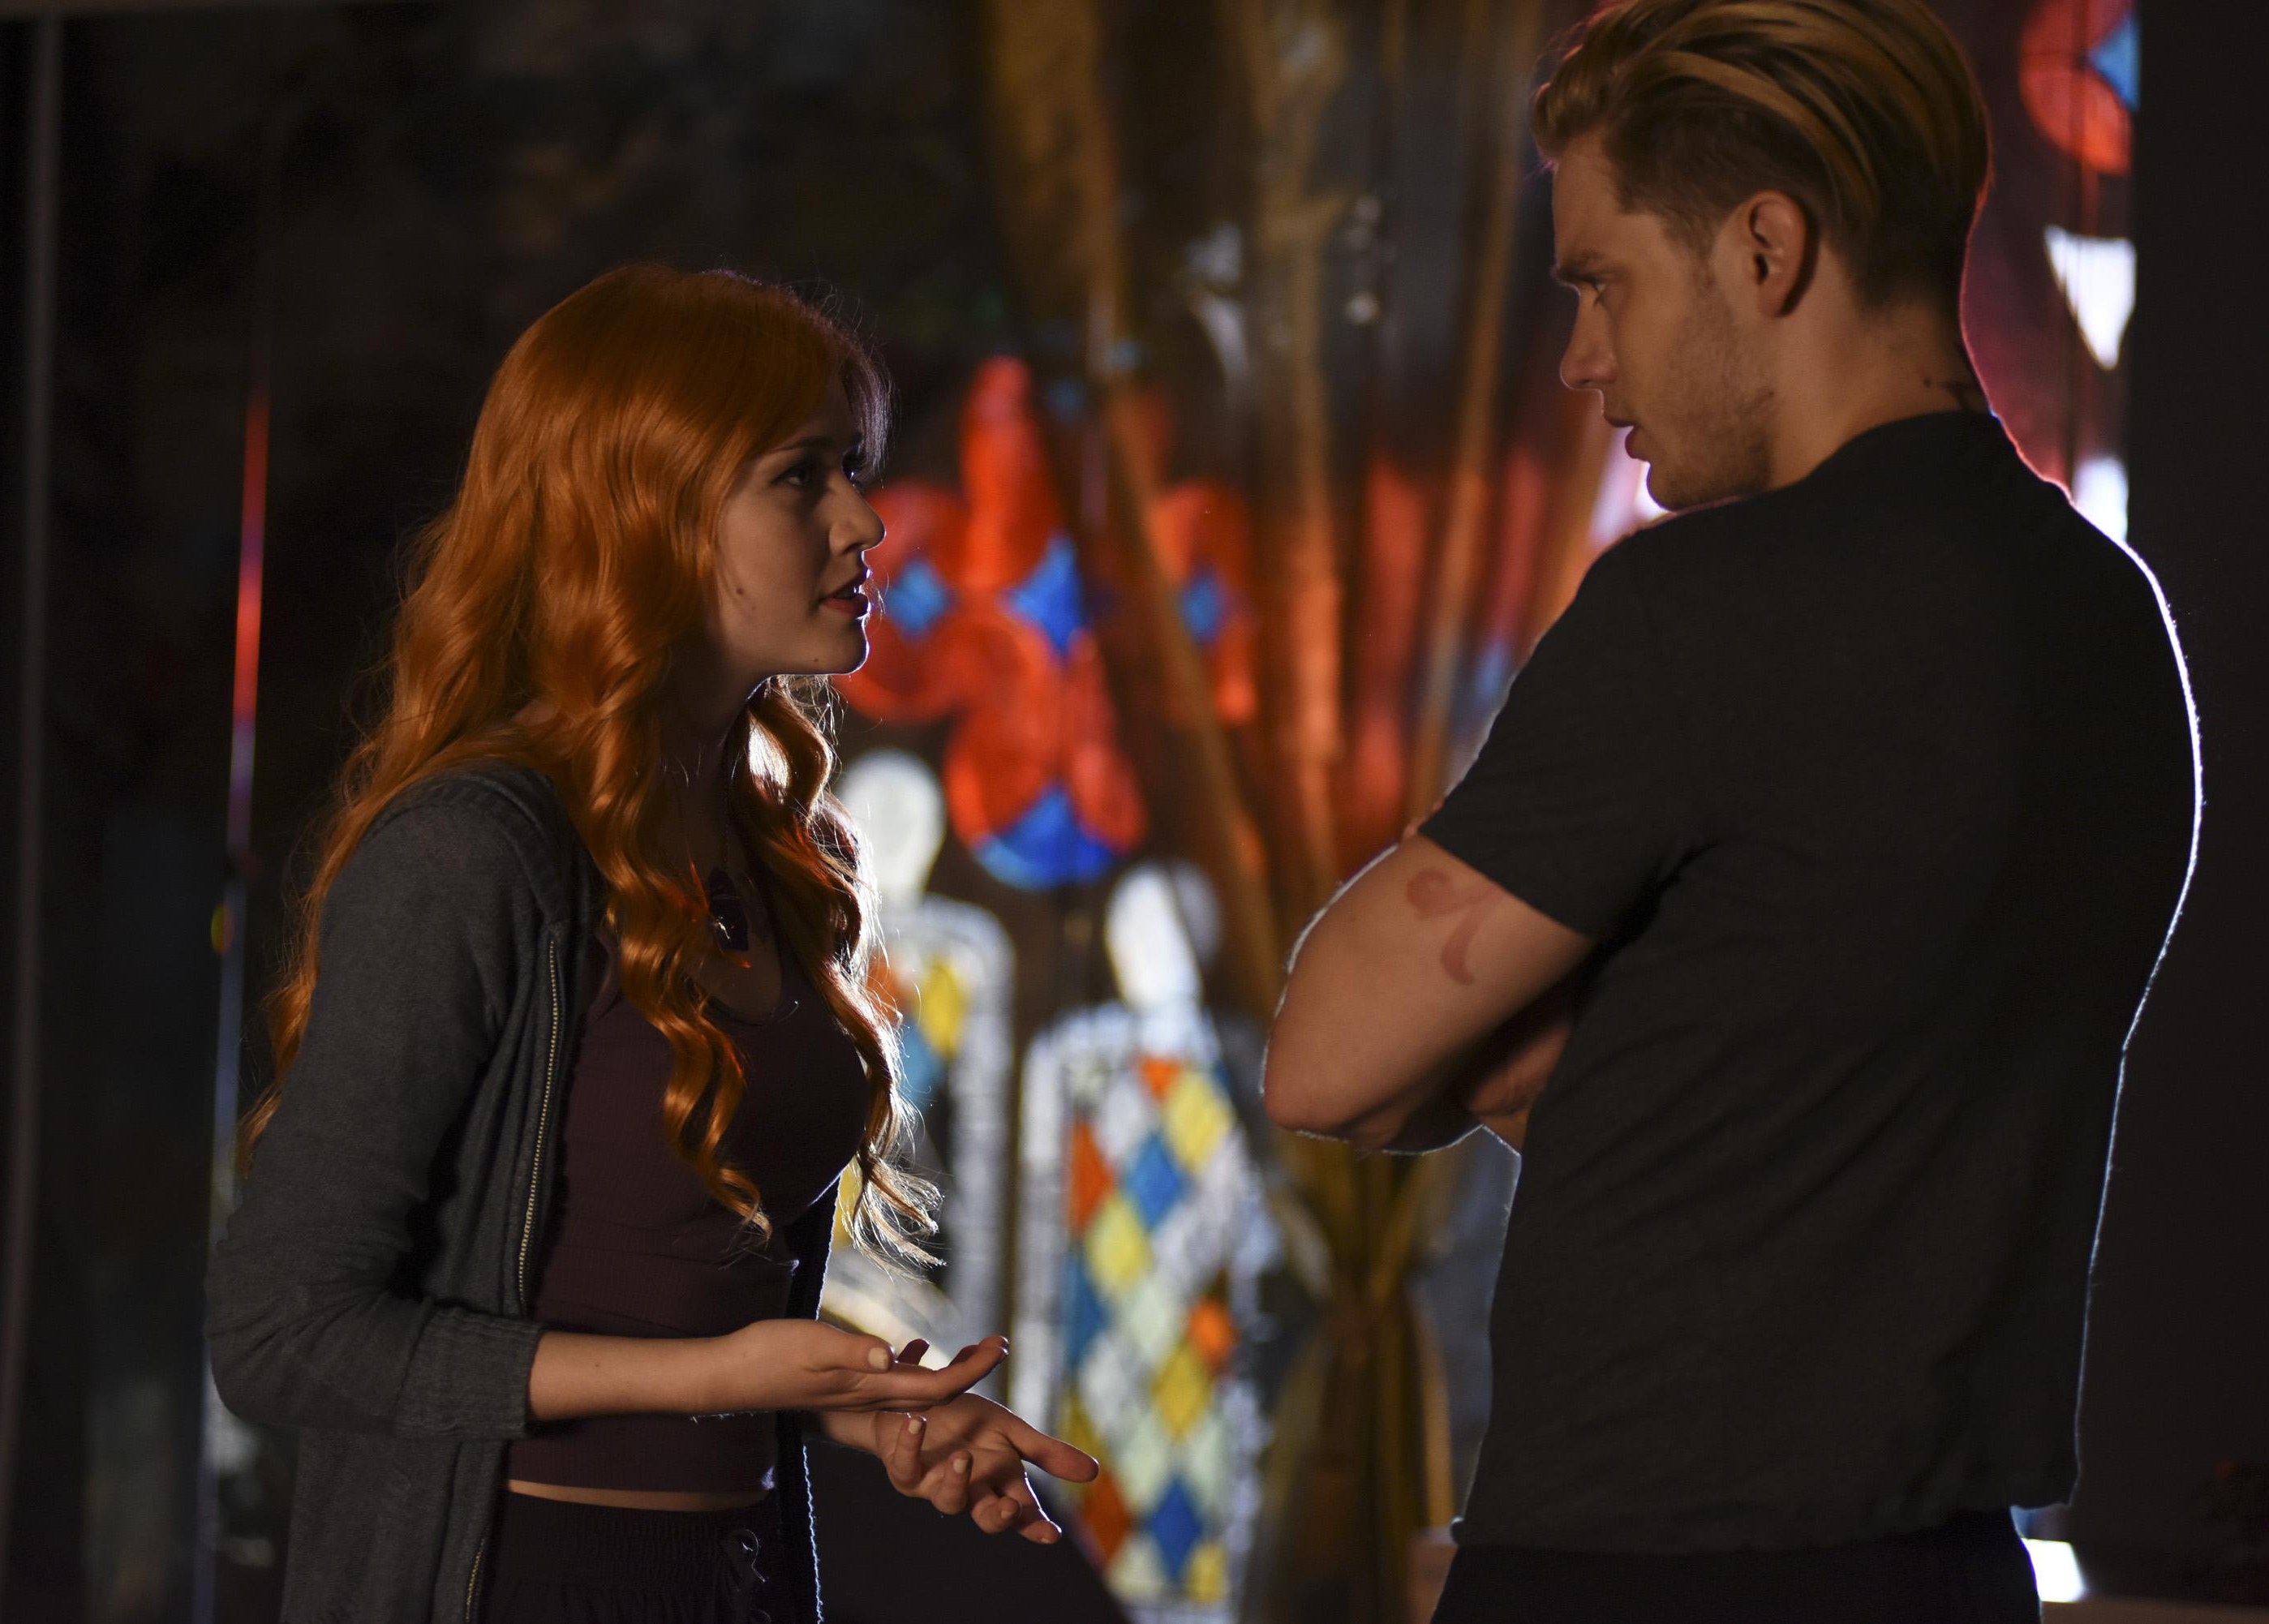 shadowhunters-episode-4-03